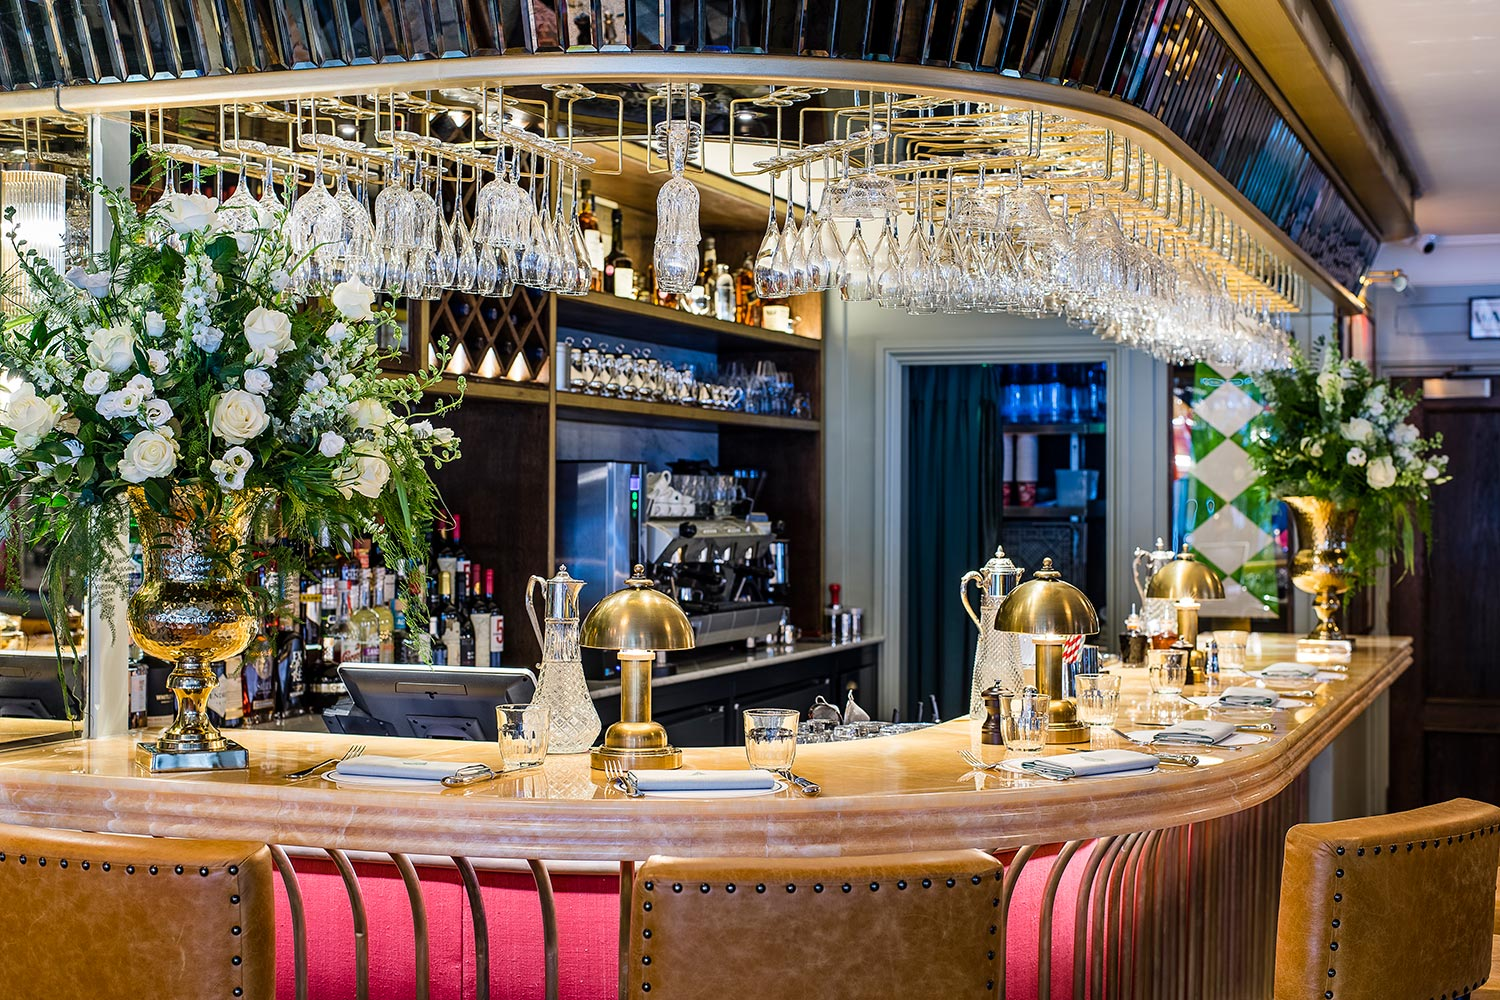 The bar at The Ivy St Albans Brasserie - The Ivy St Albans Brasserie